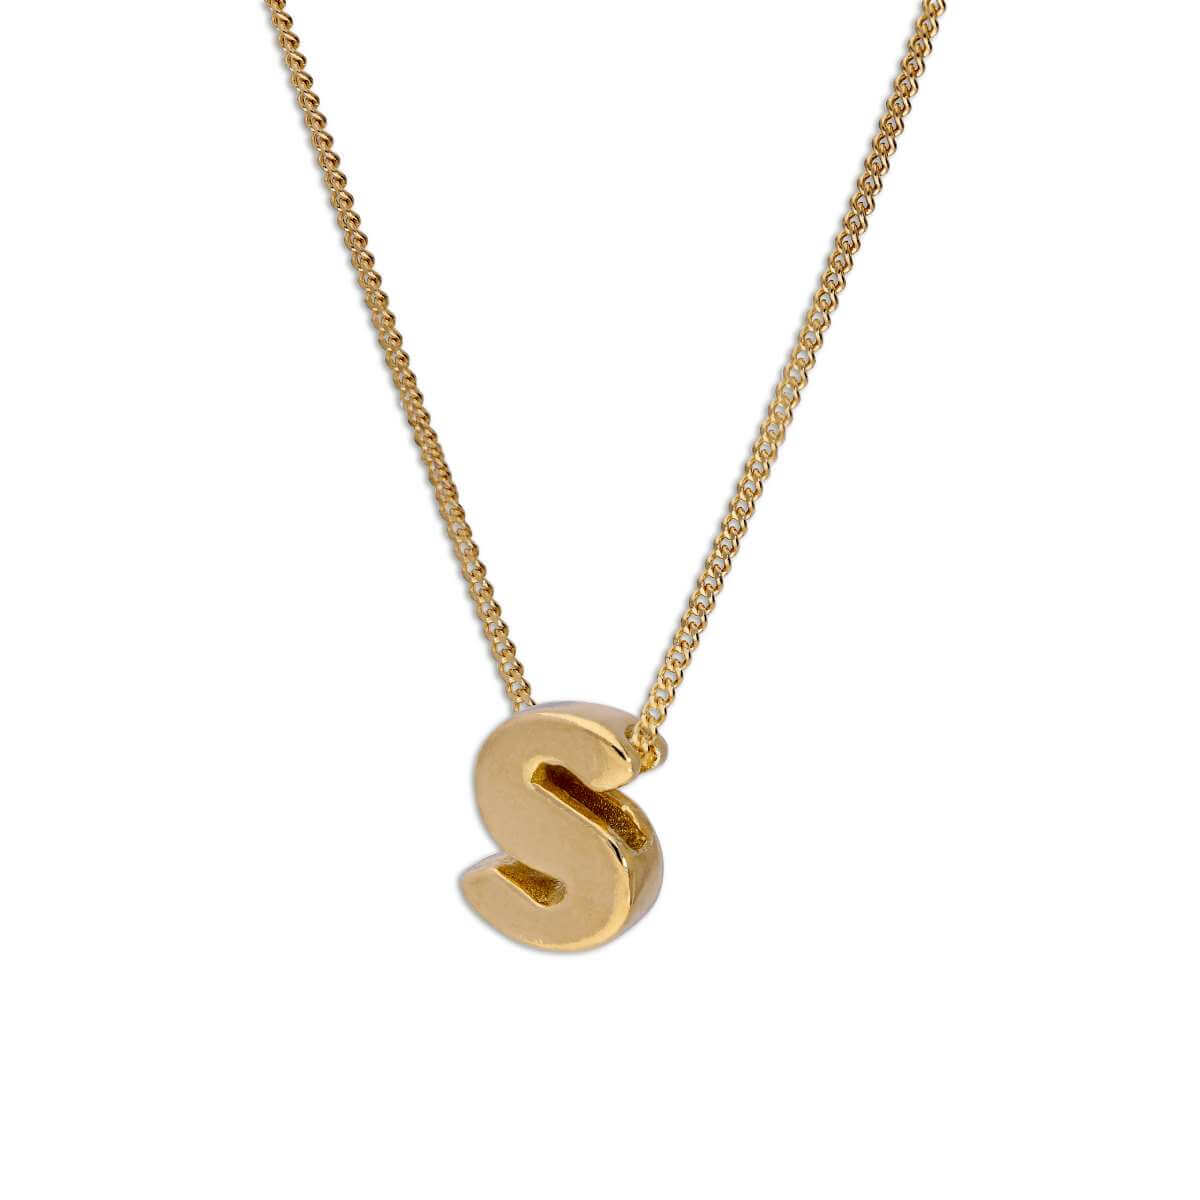 Gold Plated Sterling Silver Threader Letter S Bead Necklace 16 - 22 Inches